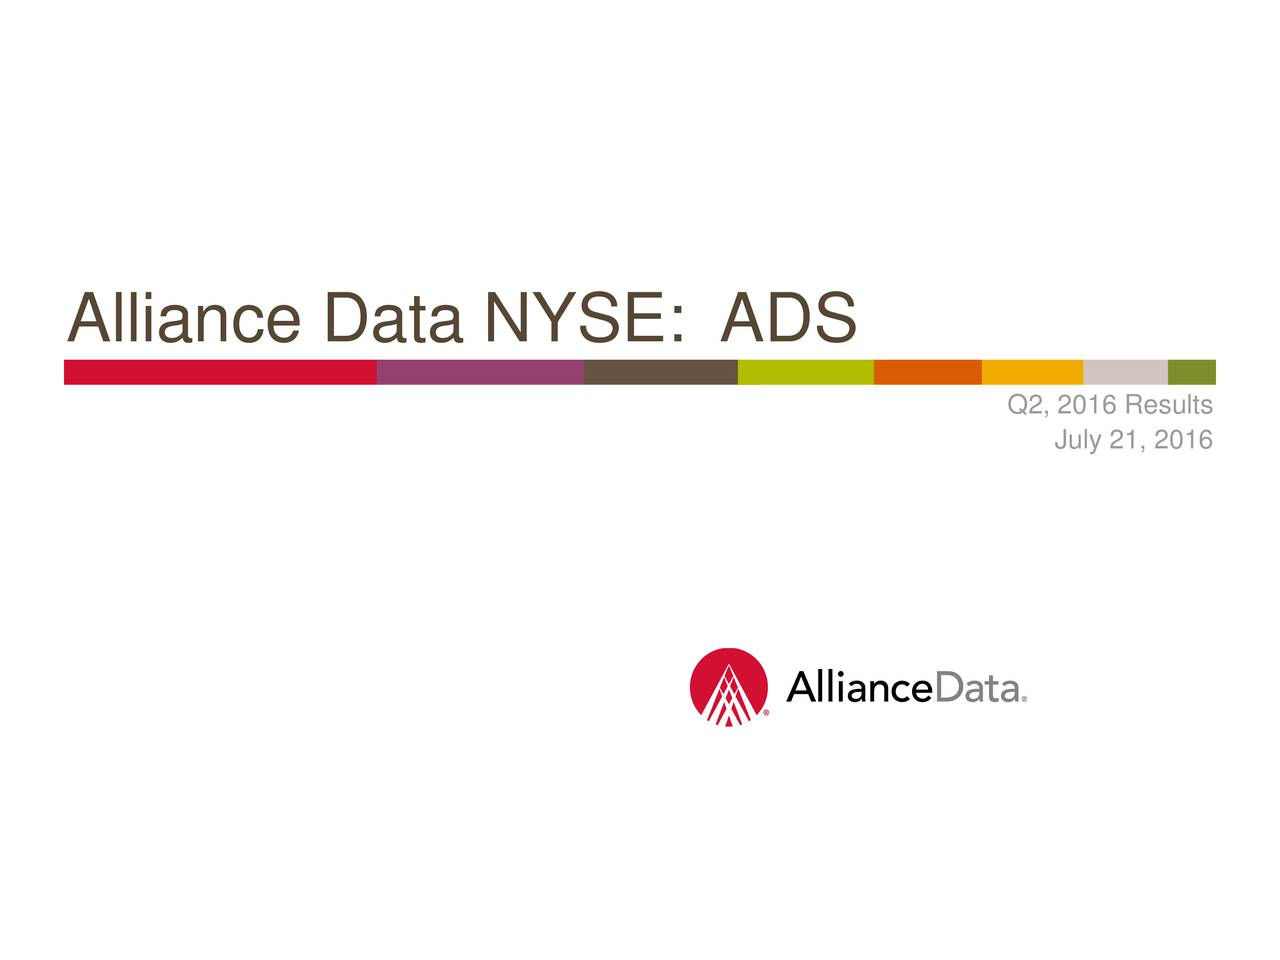 Alliance Data NYSE: ADS Q2, 2016 Results July 21, 2016 Confidential and Proprietaryems, Inc.